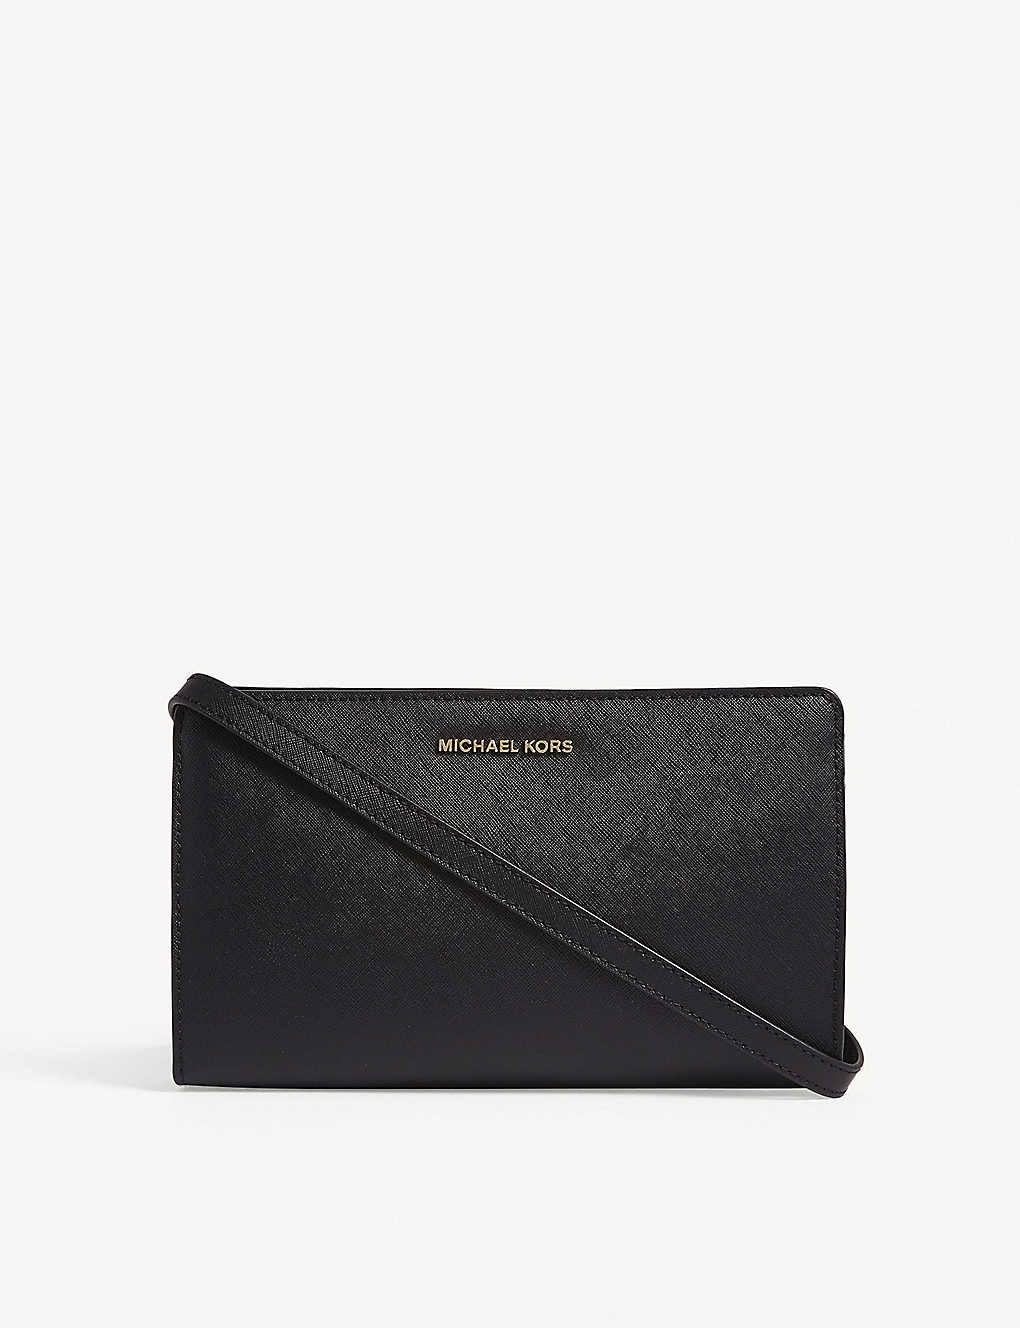 2ebaaff25c1 MICHAEL MICHAEL KORS - Jet Set Travel leather clutch | Selfridges.com